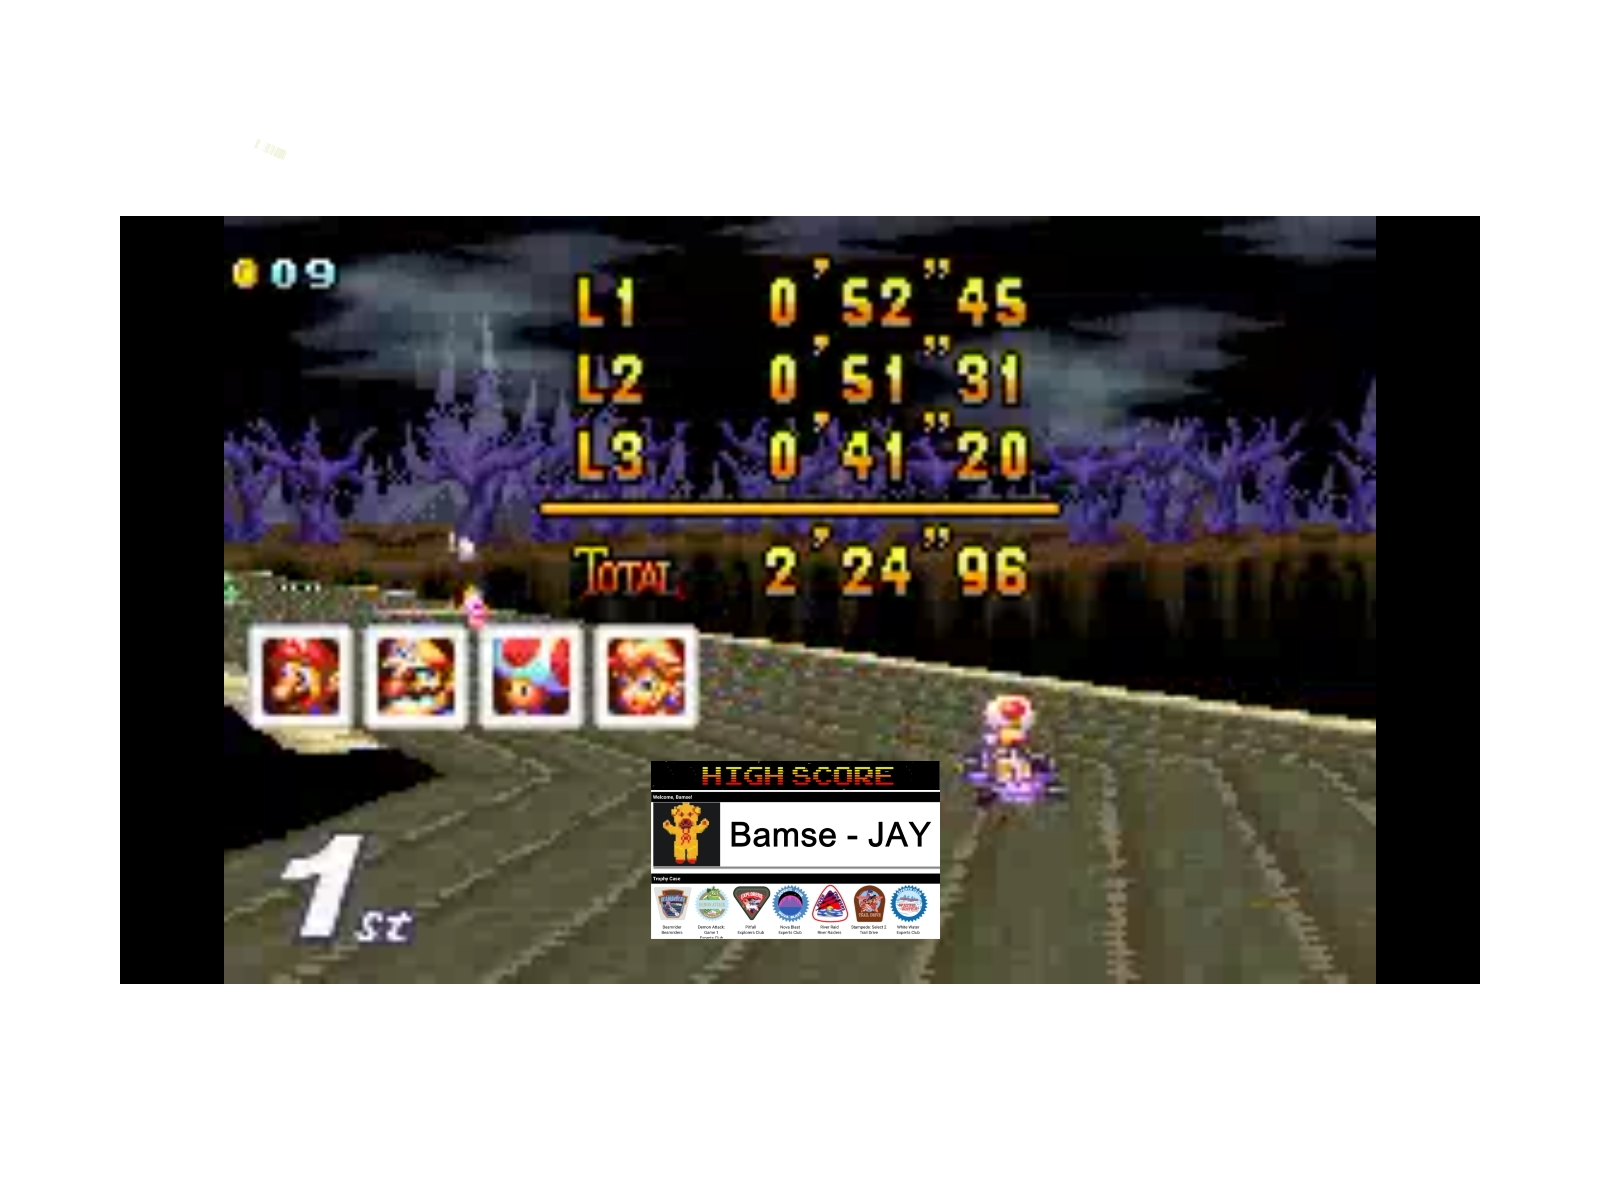 Bamse: Mario Kart Super Circuit: Boo Lake [50cc] (GBA Emulated) 0:02:24.96 points on 2019-12-17 11:52:43